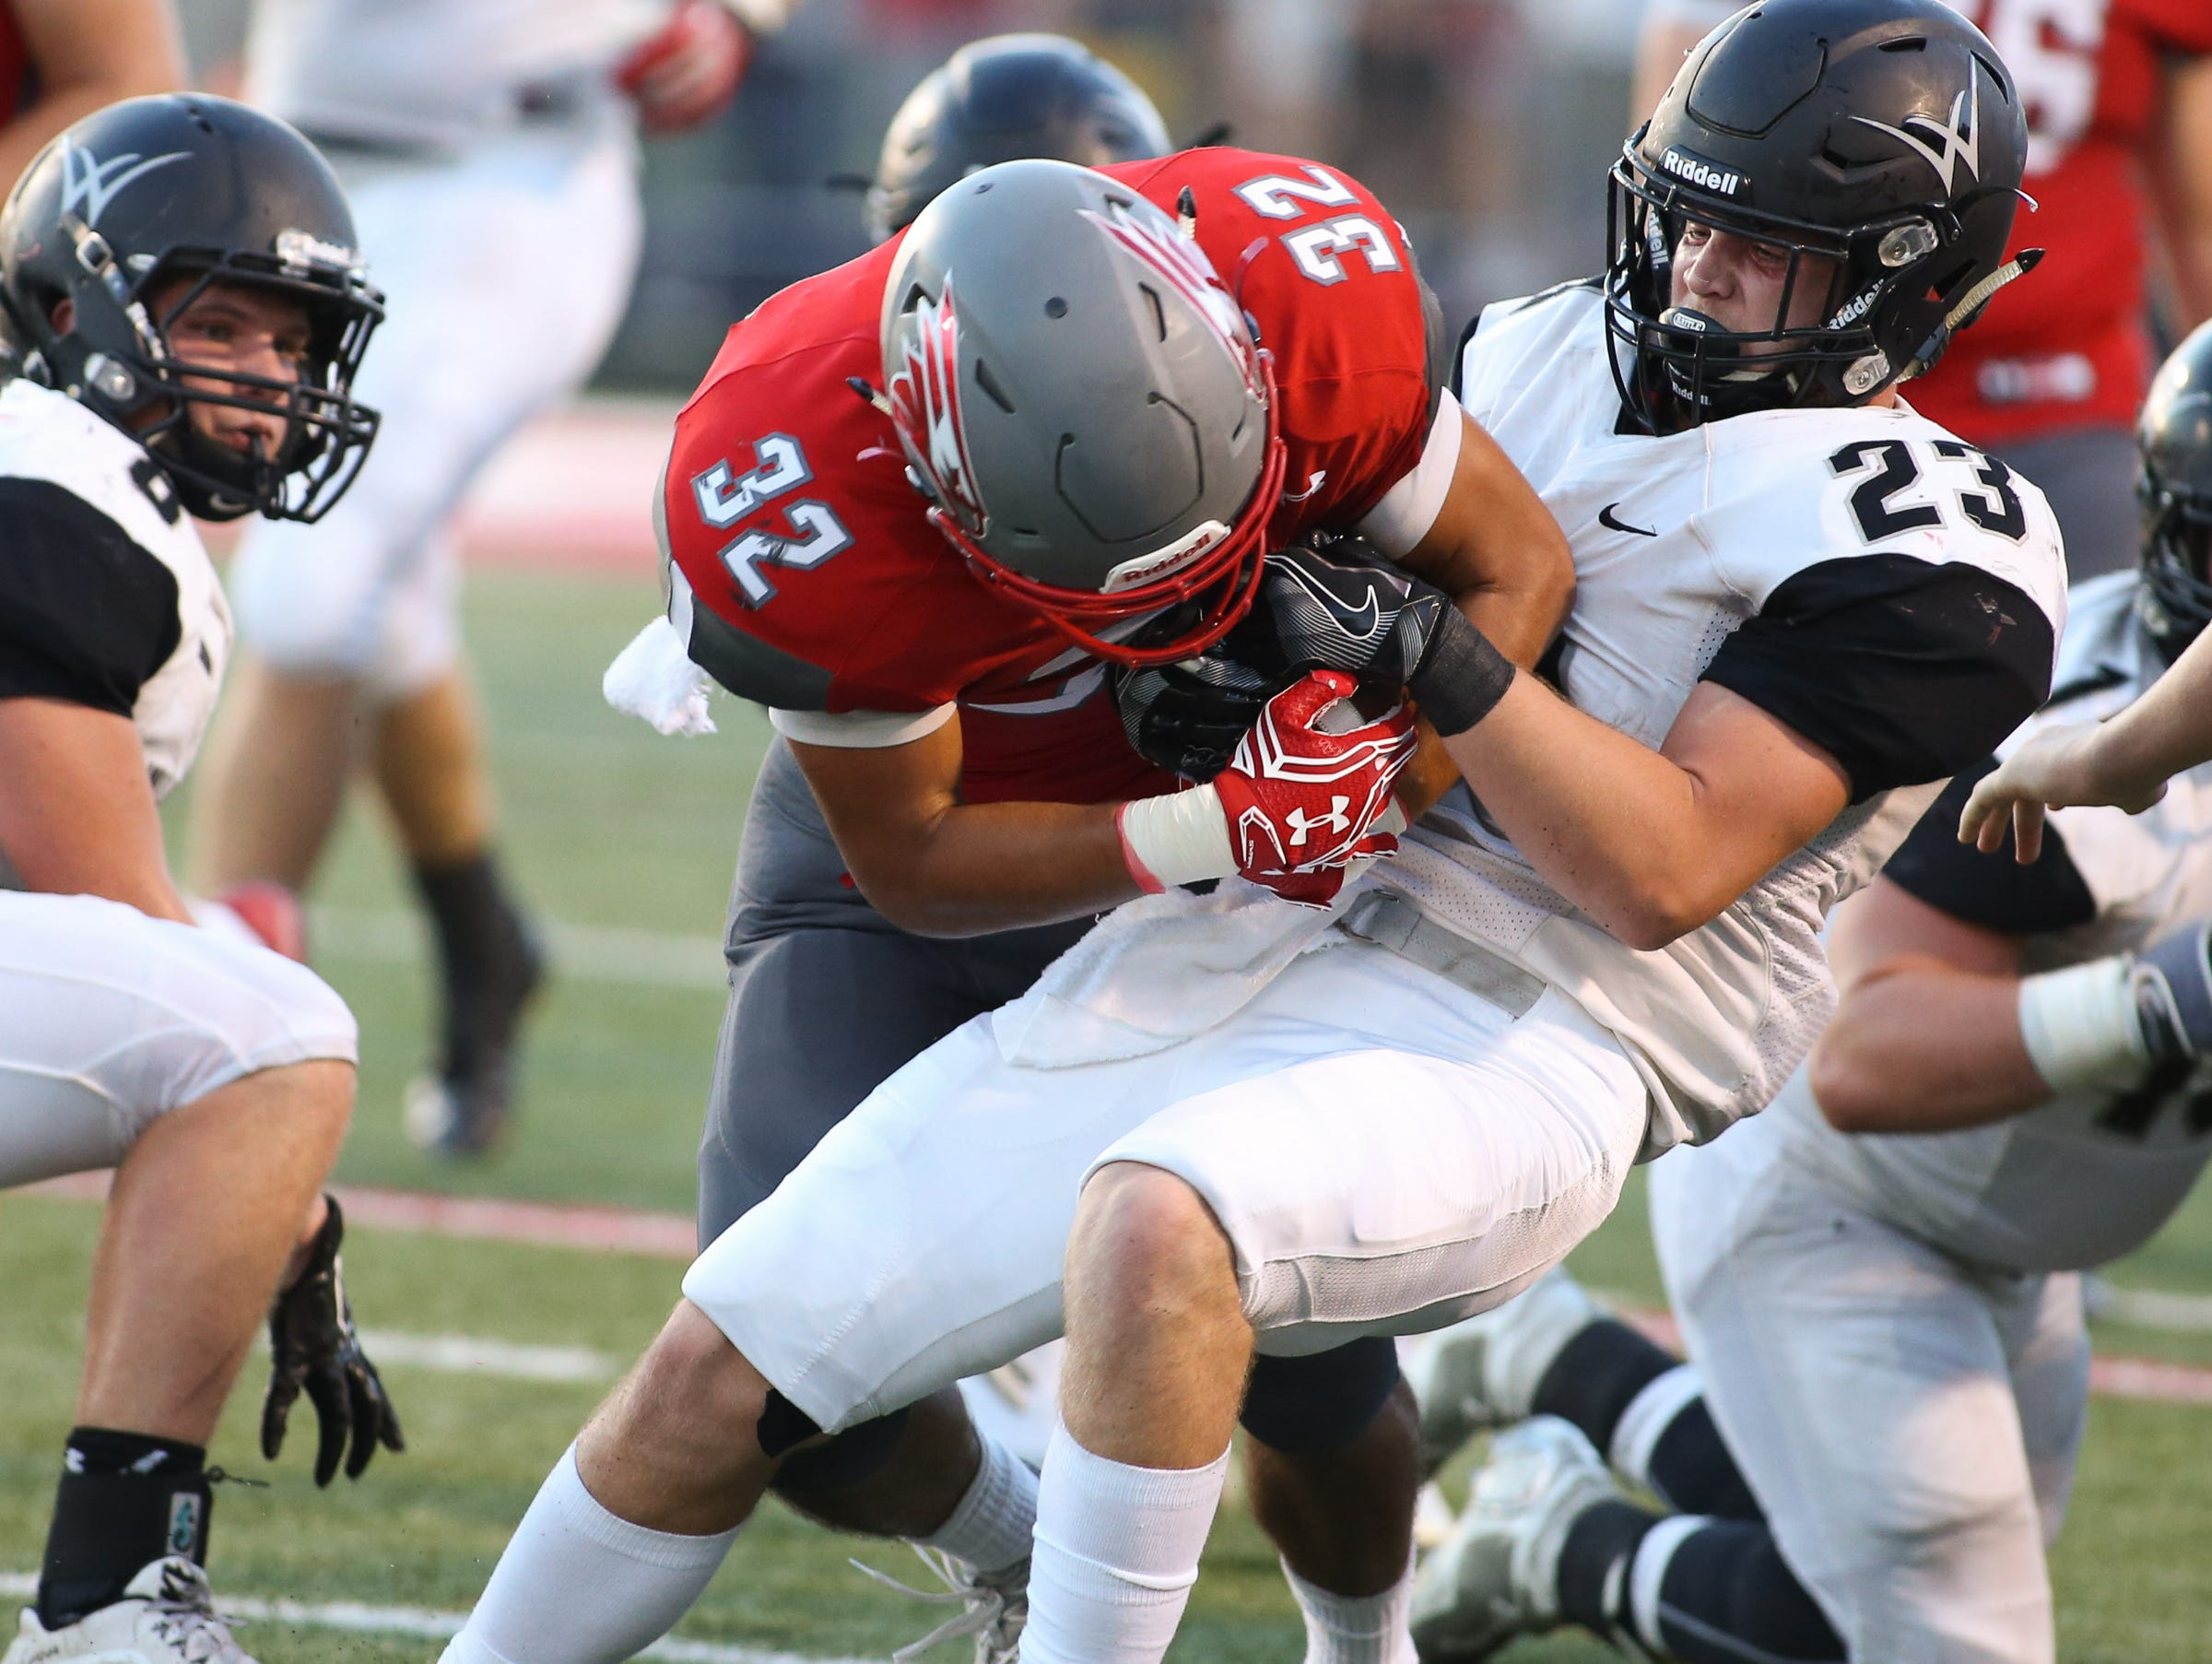 Willard High School's Clay Burkett-Gibson tries to rip the football away from Nixa's Nicos Oropeza Friday, August 19, 2016. Jason Connel / For the News-Leader